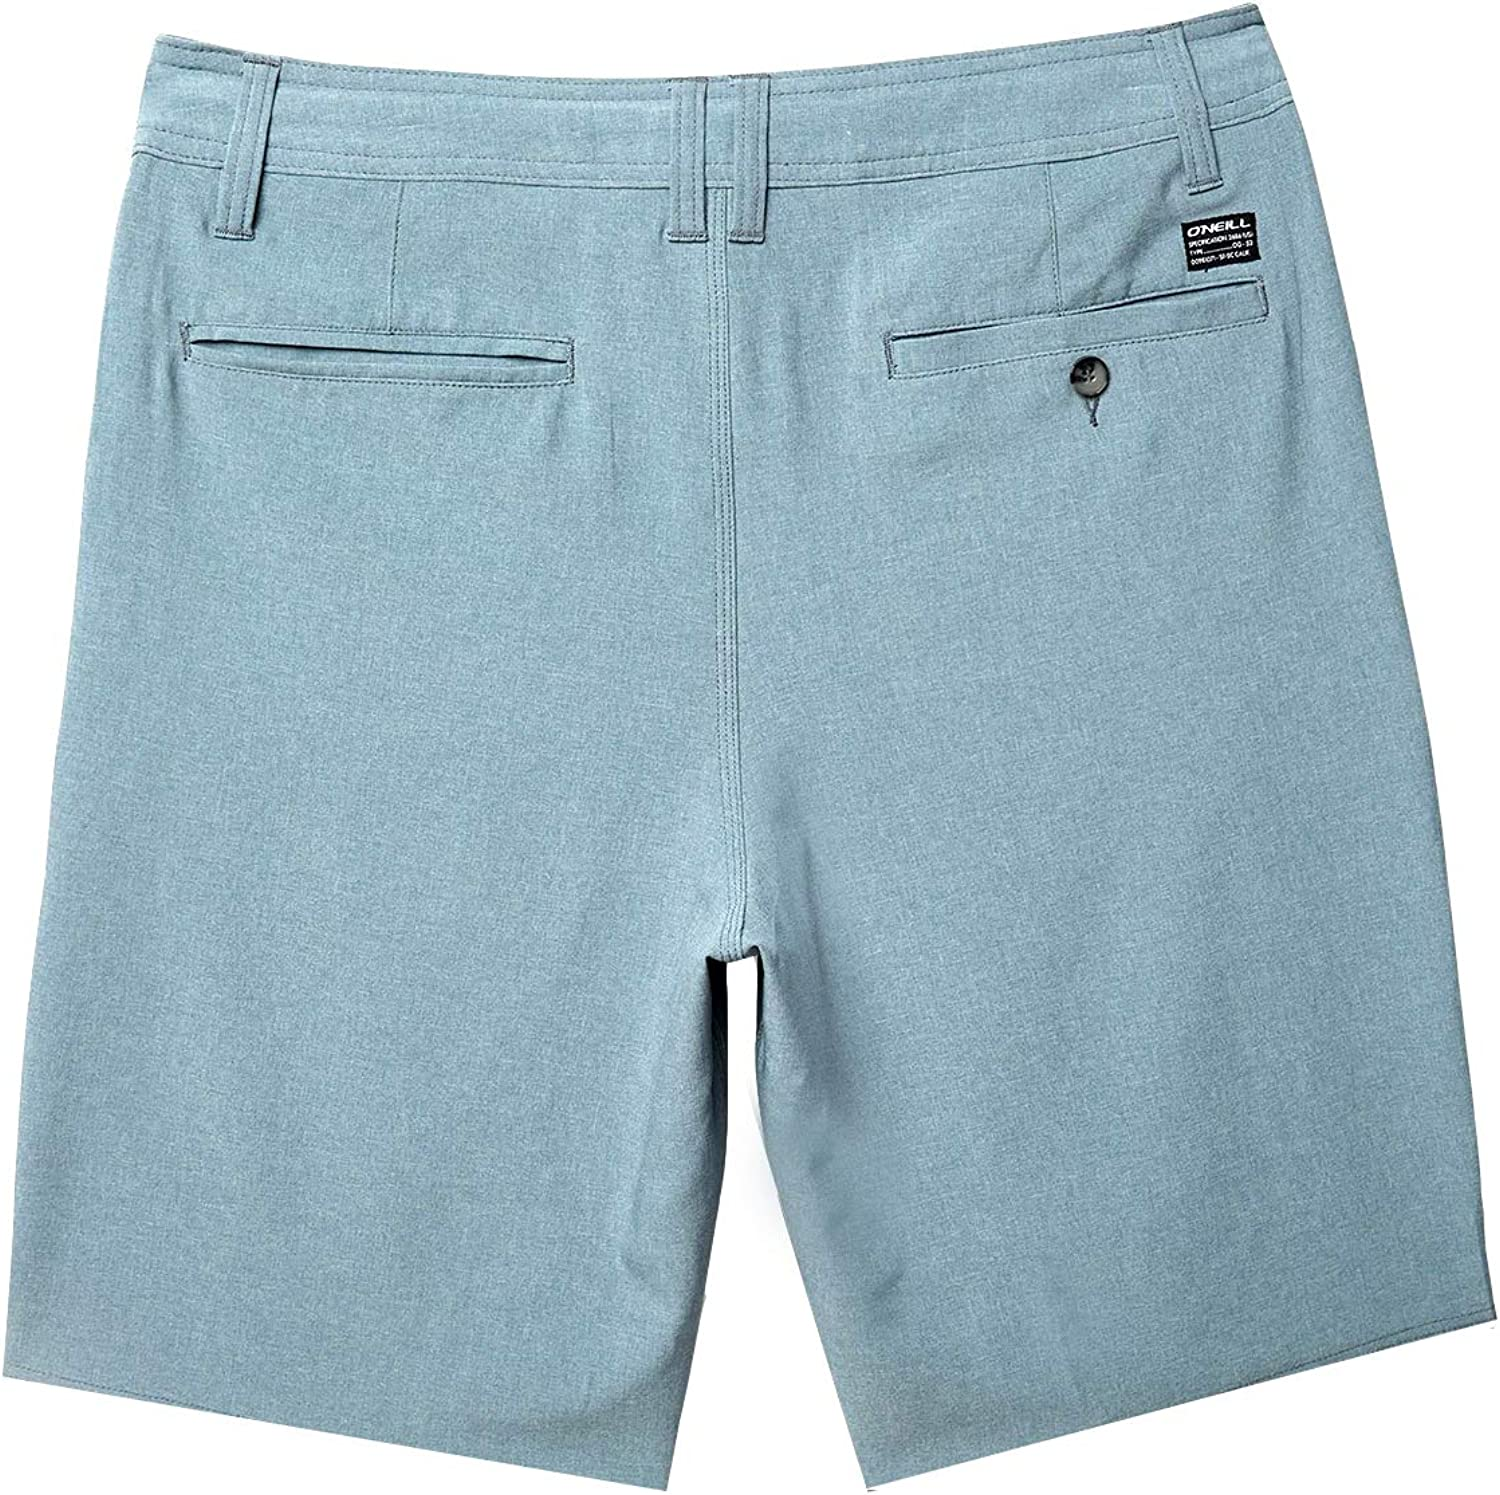 O'NEILL Men's Standard Fit Chino Short, 21 Inch Outseam: Clothing